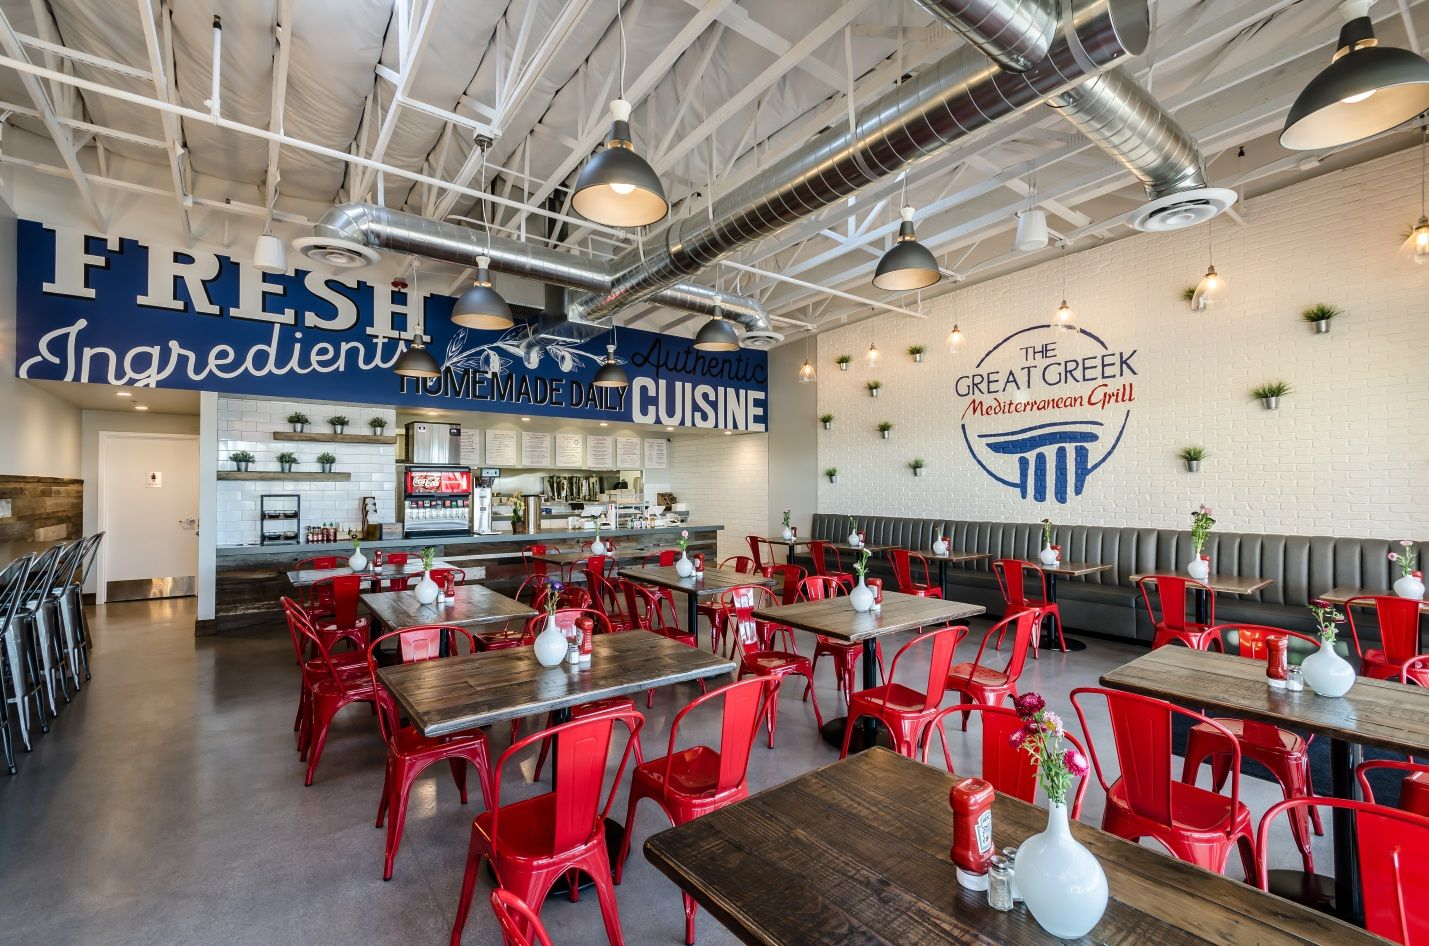 United Franchise Group Network Partners with The Great Greek Mediterranean Grill